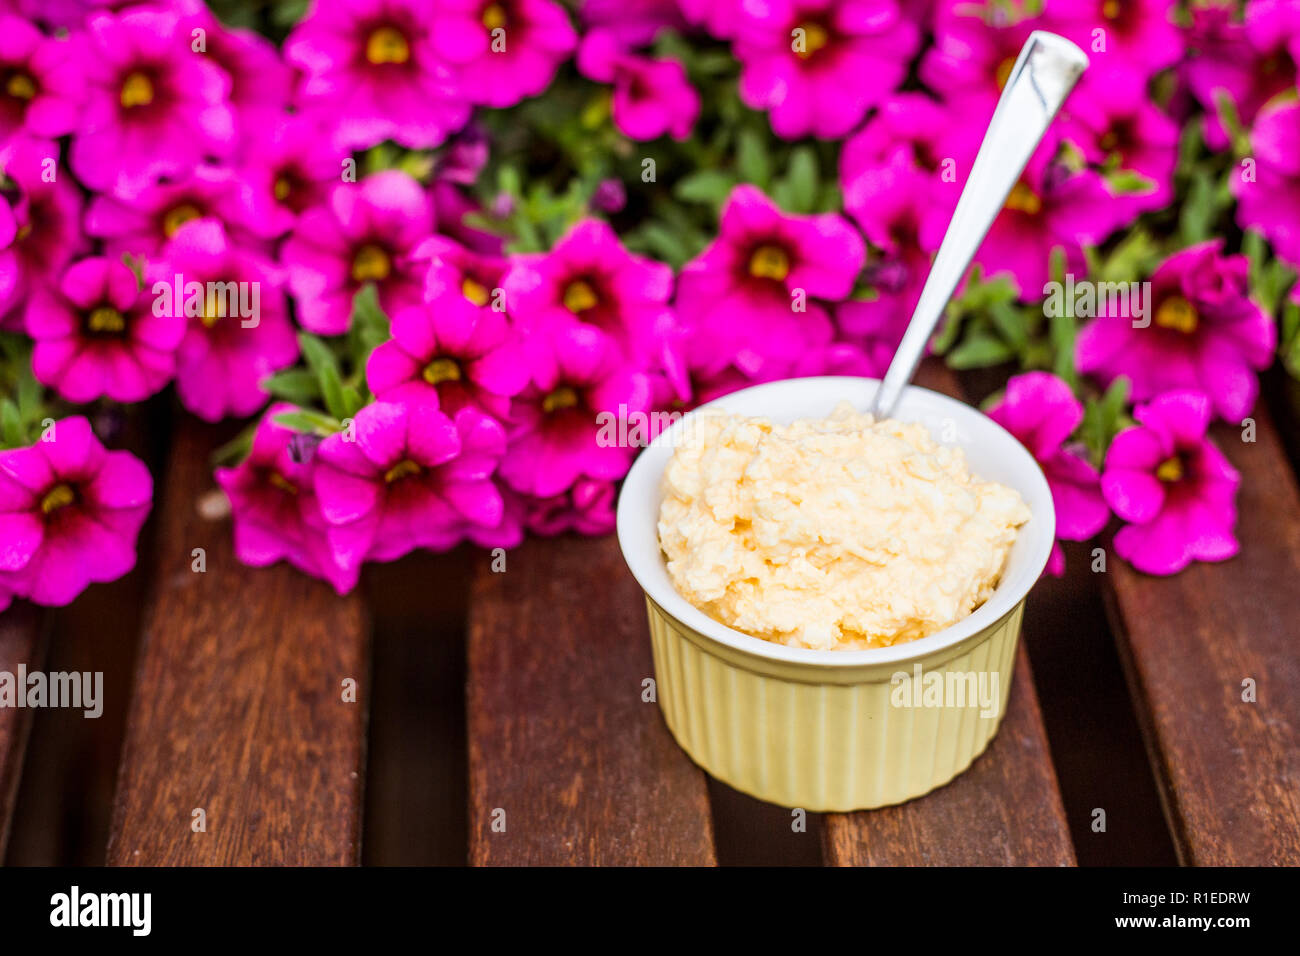 Yellow delicious egg and mayonnaise paste in yellow cup, spoon sticking out, breakfast snack recipe, pink flowers on the background, wooden base. Stock Photo